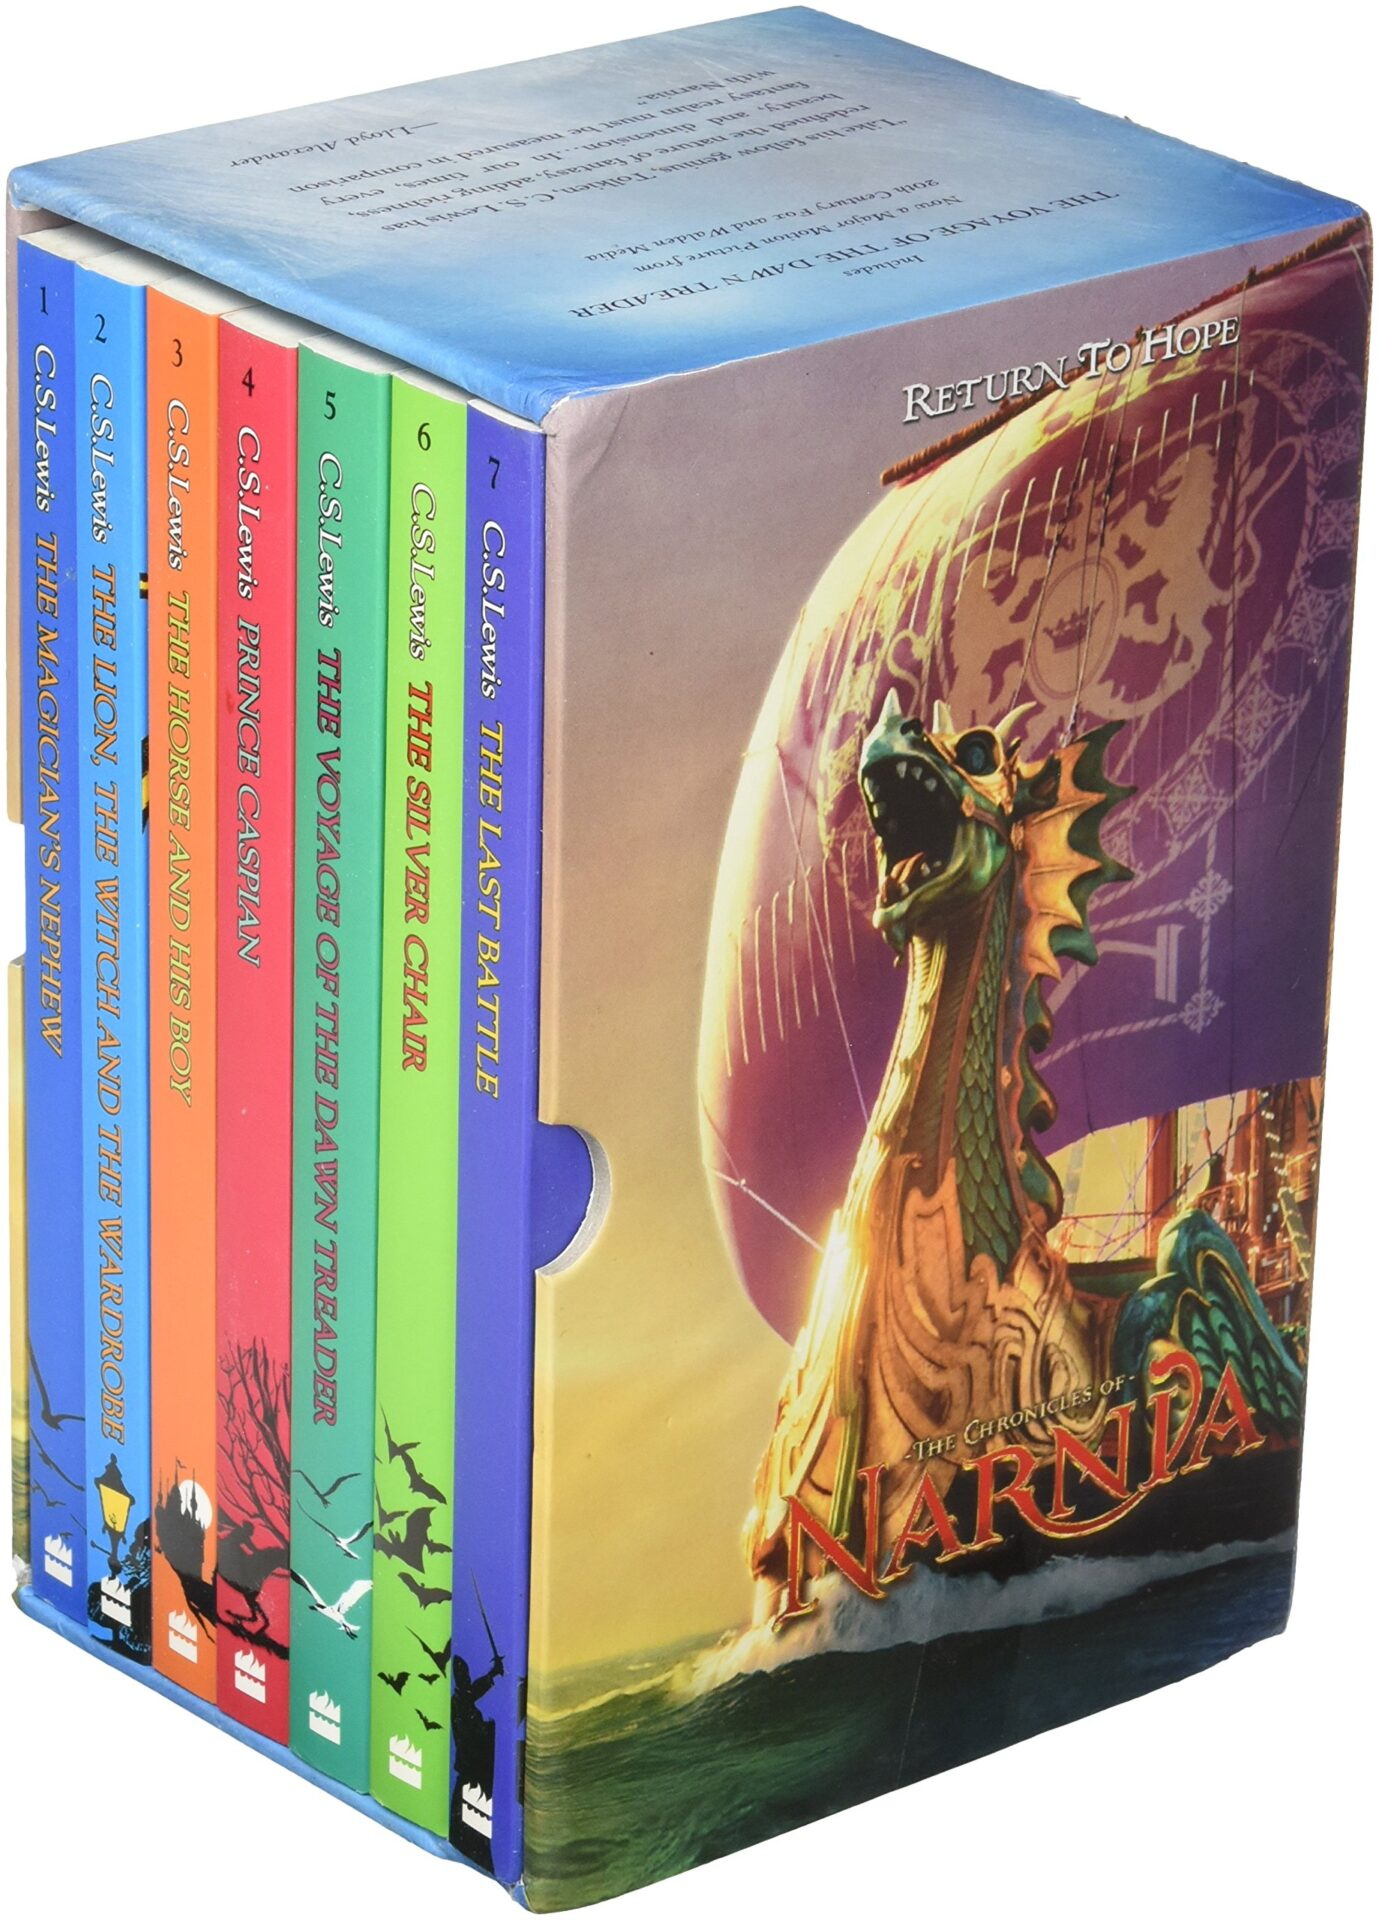 Narnia series for 10 year old kids